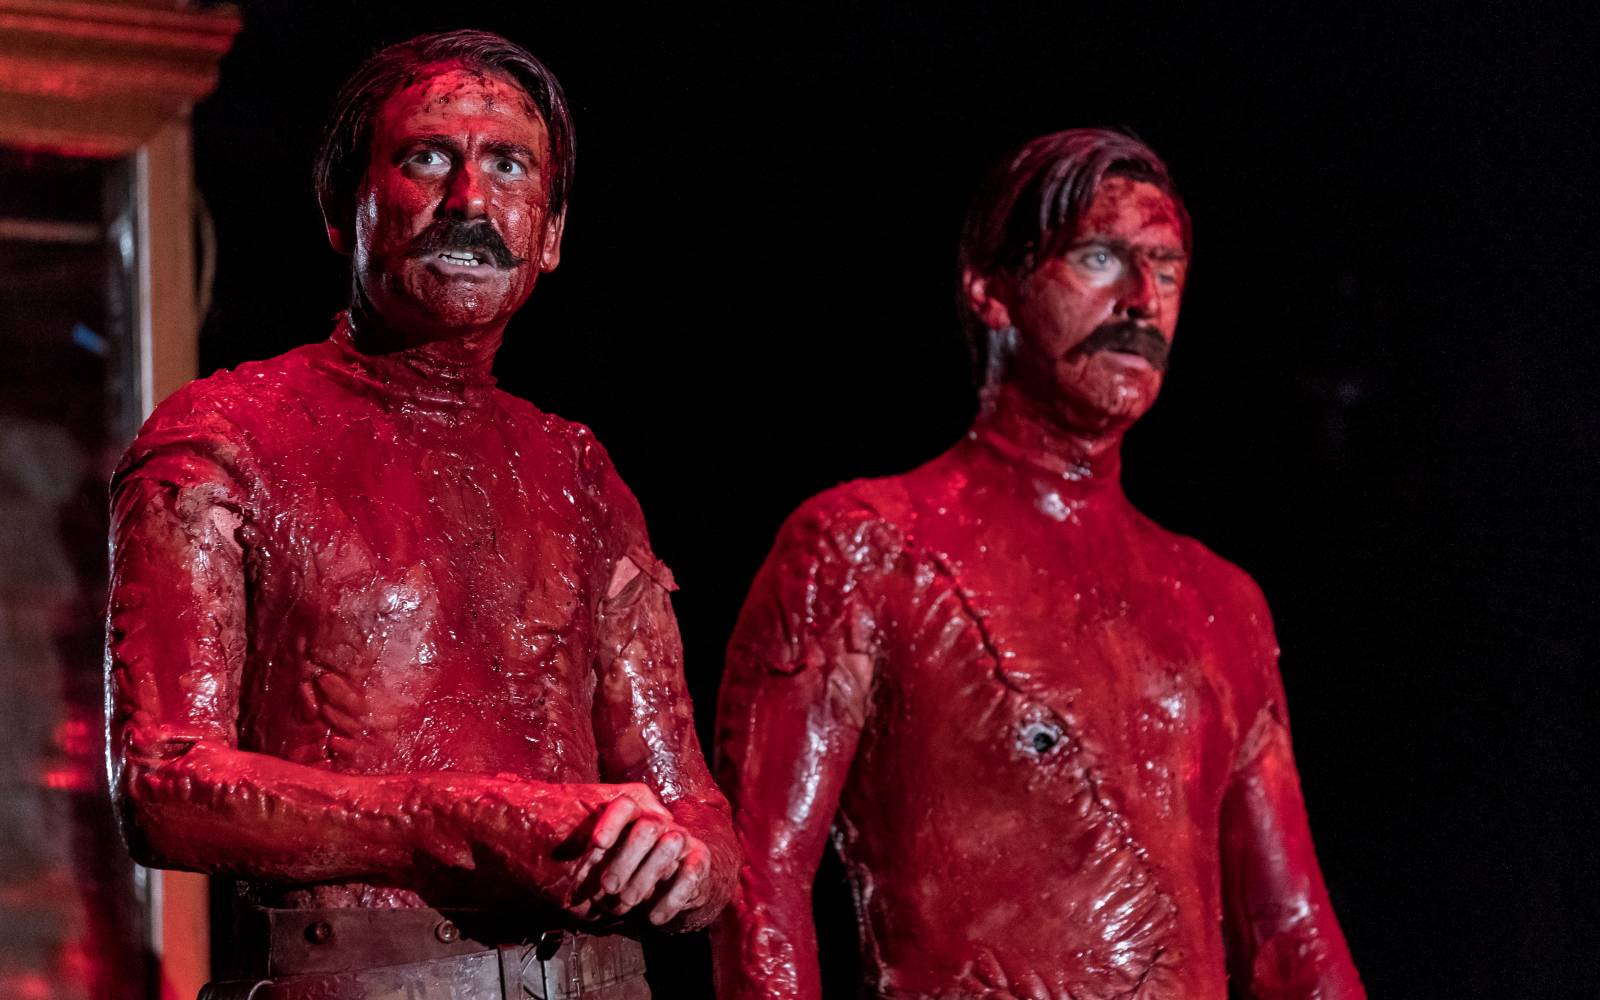 Two topless men, covered all over in blood. Their bodies are riddled with scars